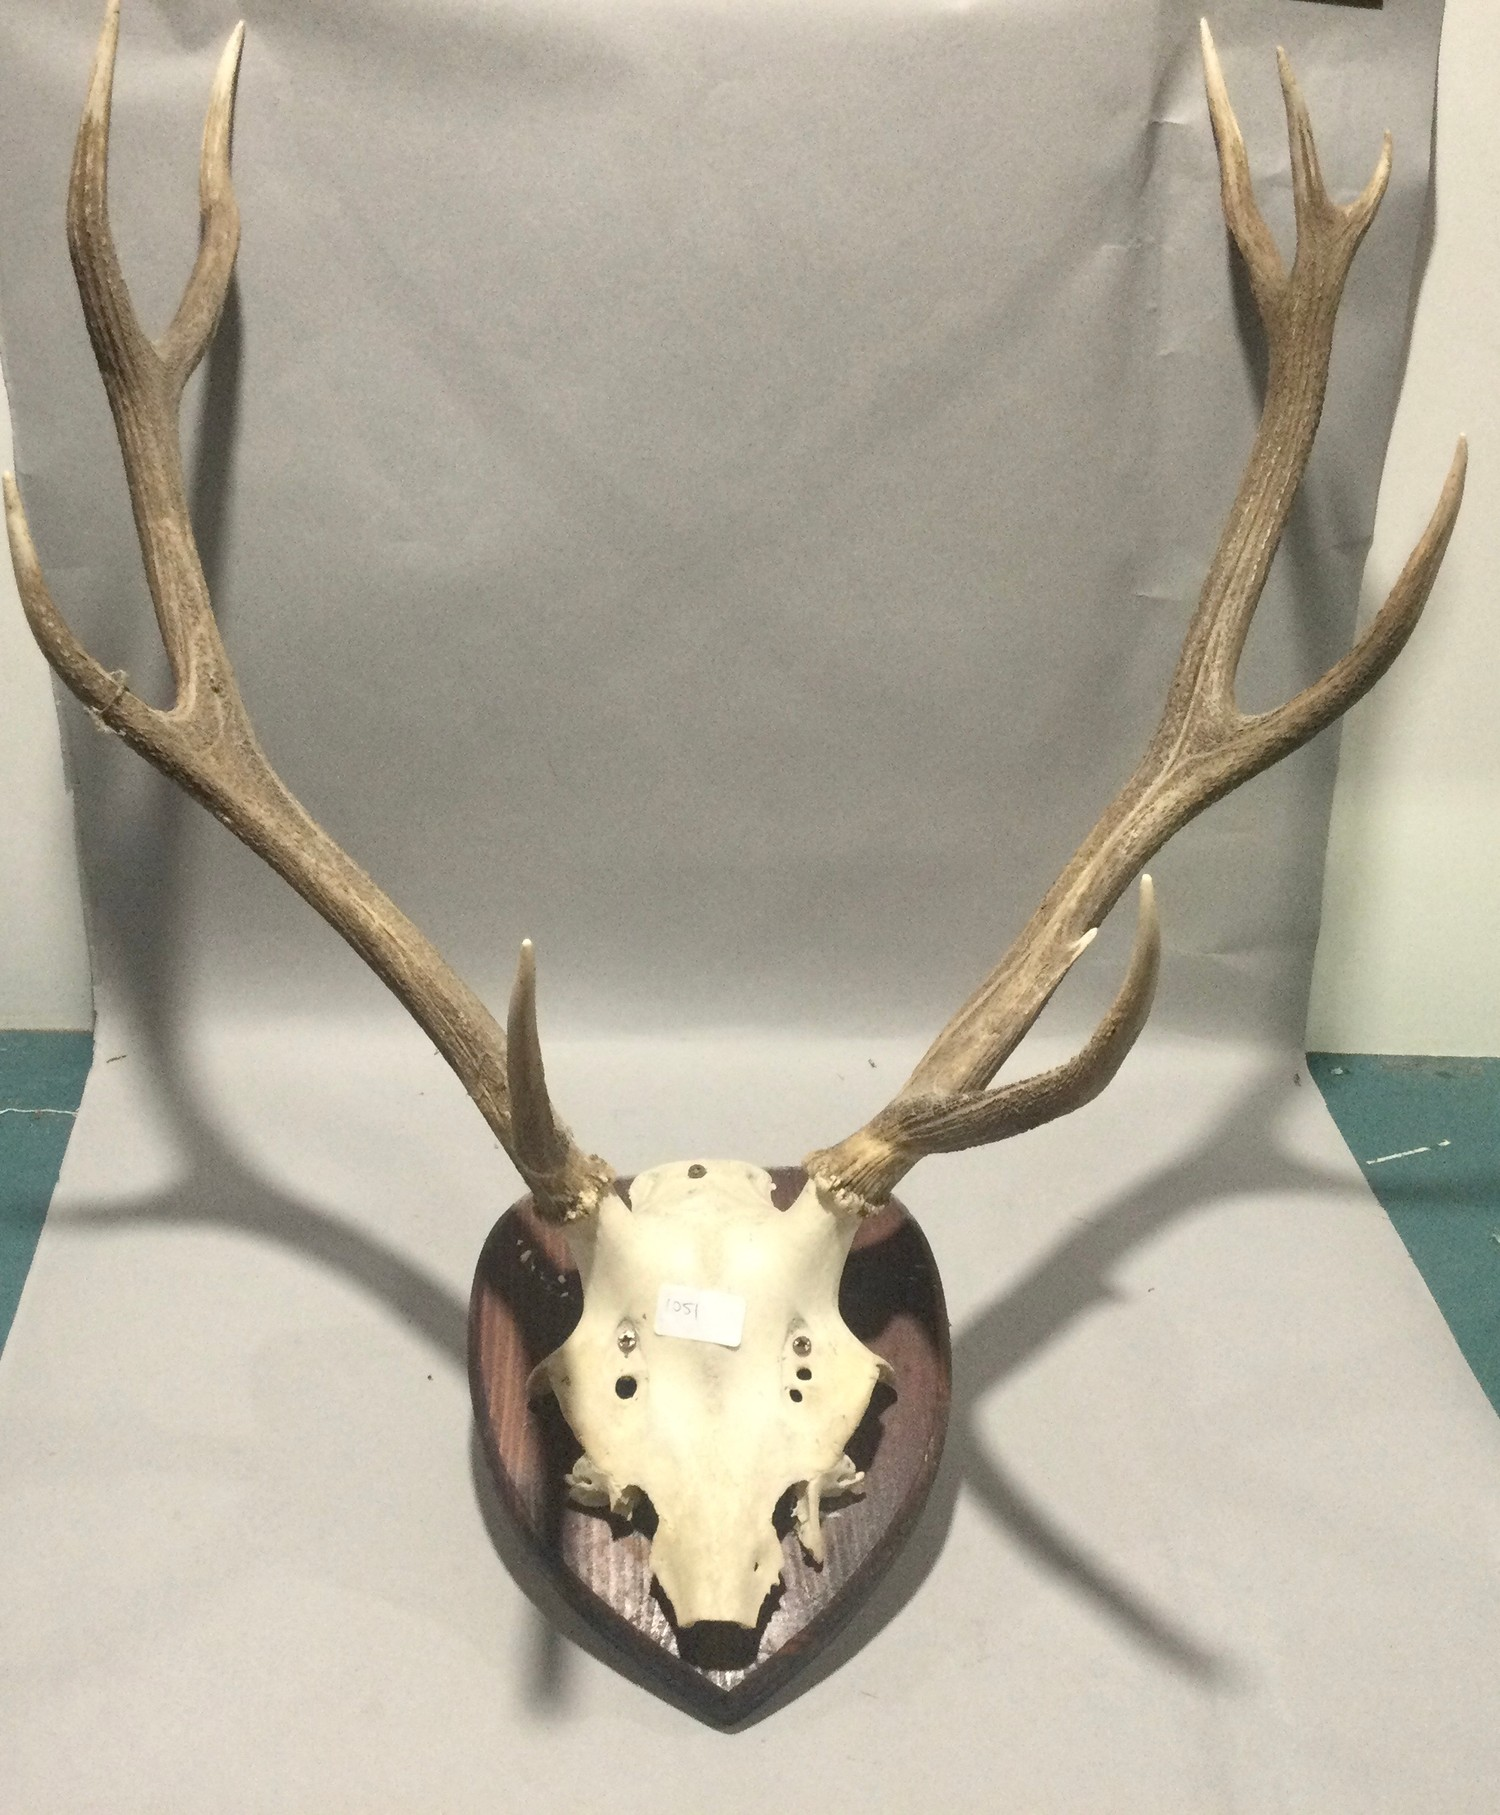 Pair of stag horns mounted on a wall shield 5 piont 80x60cm